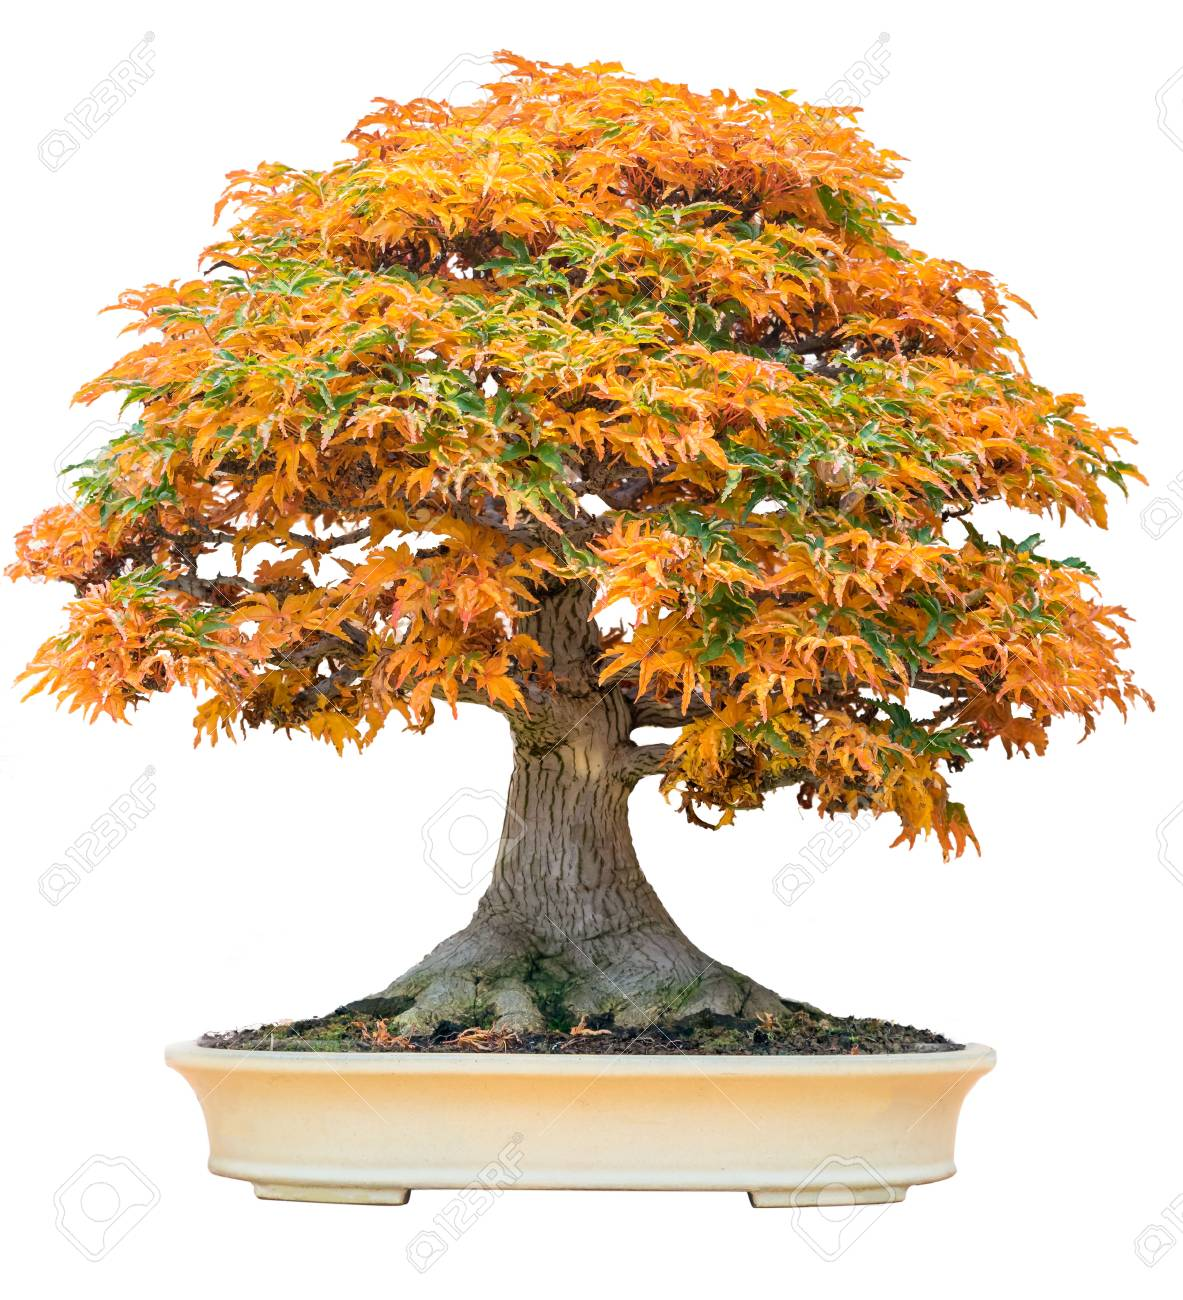 Yellow Bonsai Maple Tree Acer Palmatum Bonsai Tree Of Trident